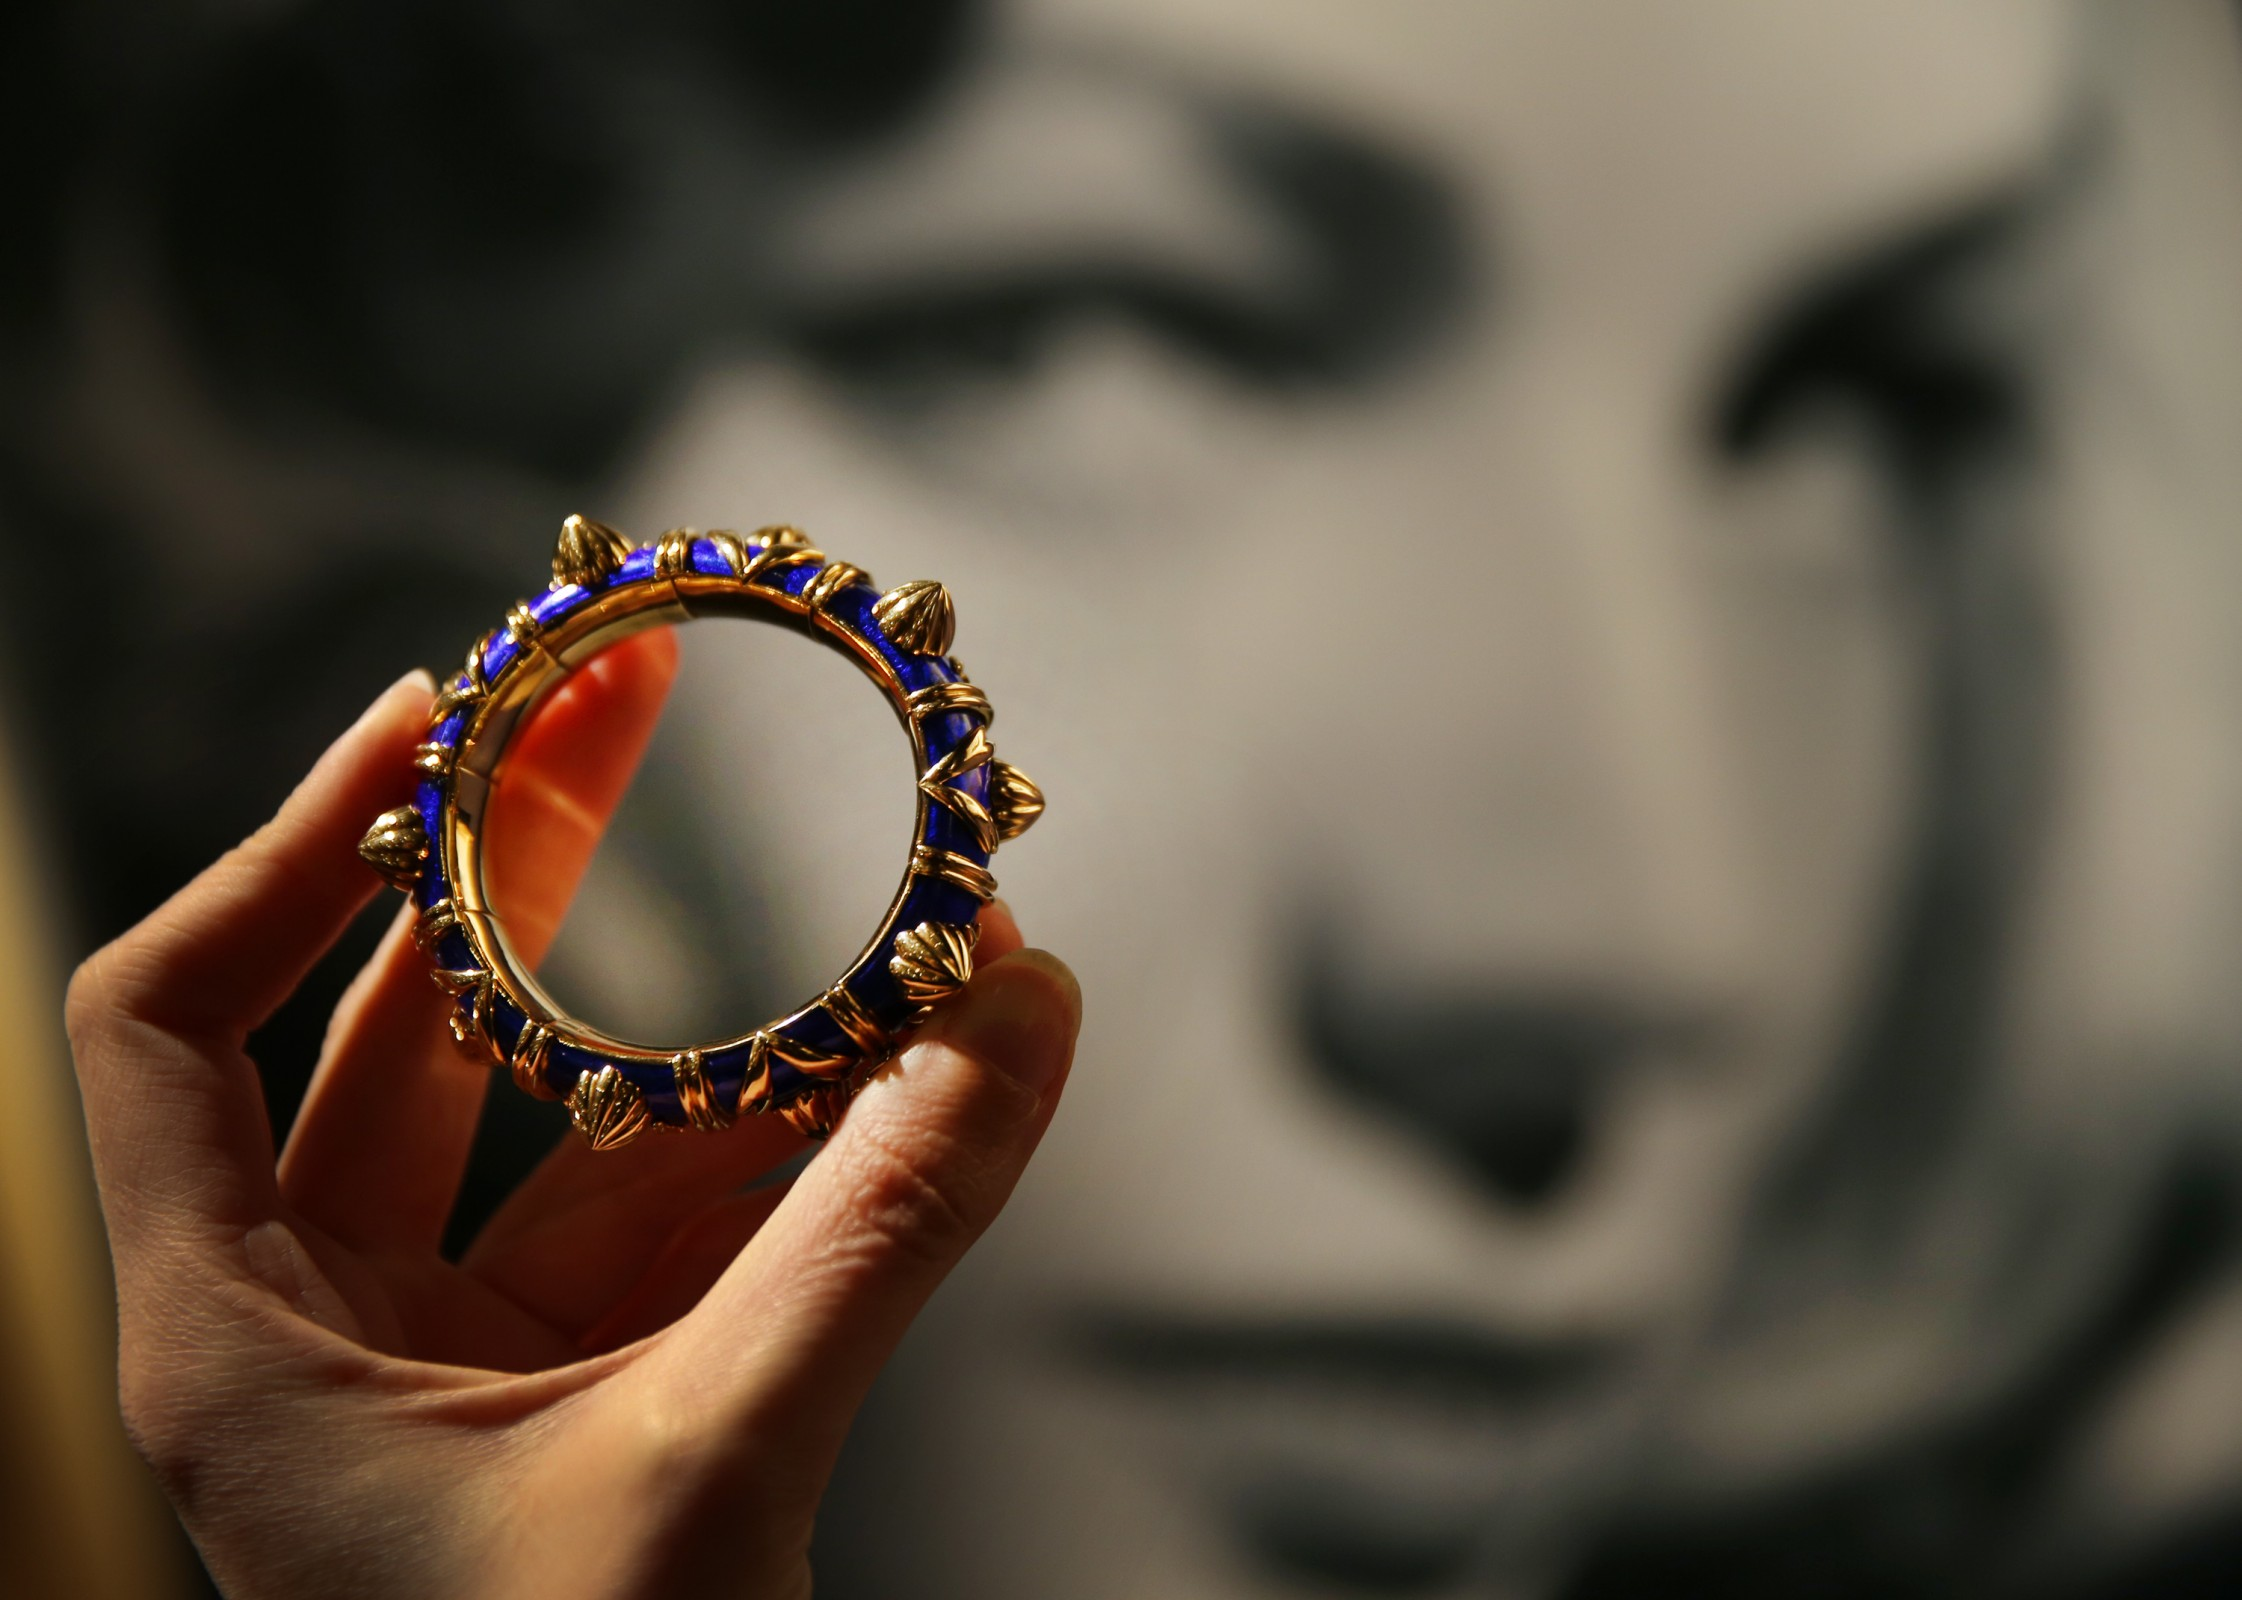 Lauren Bacall Collection Sold for $3.64 Million